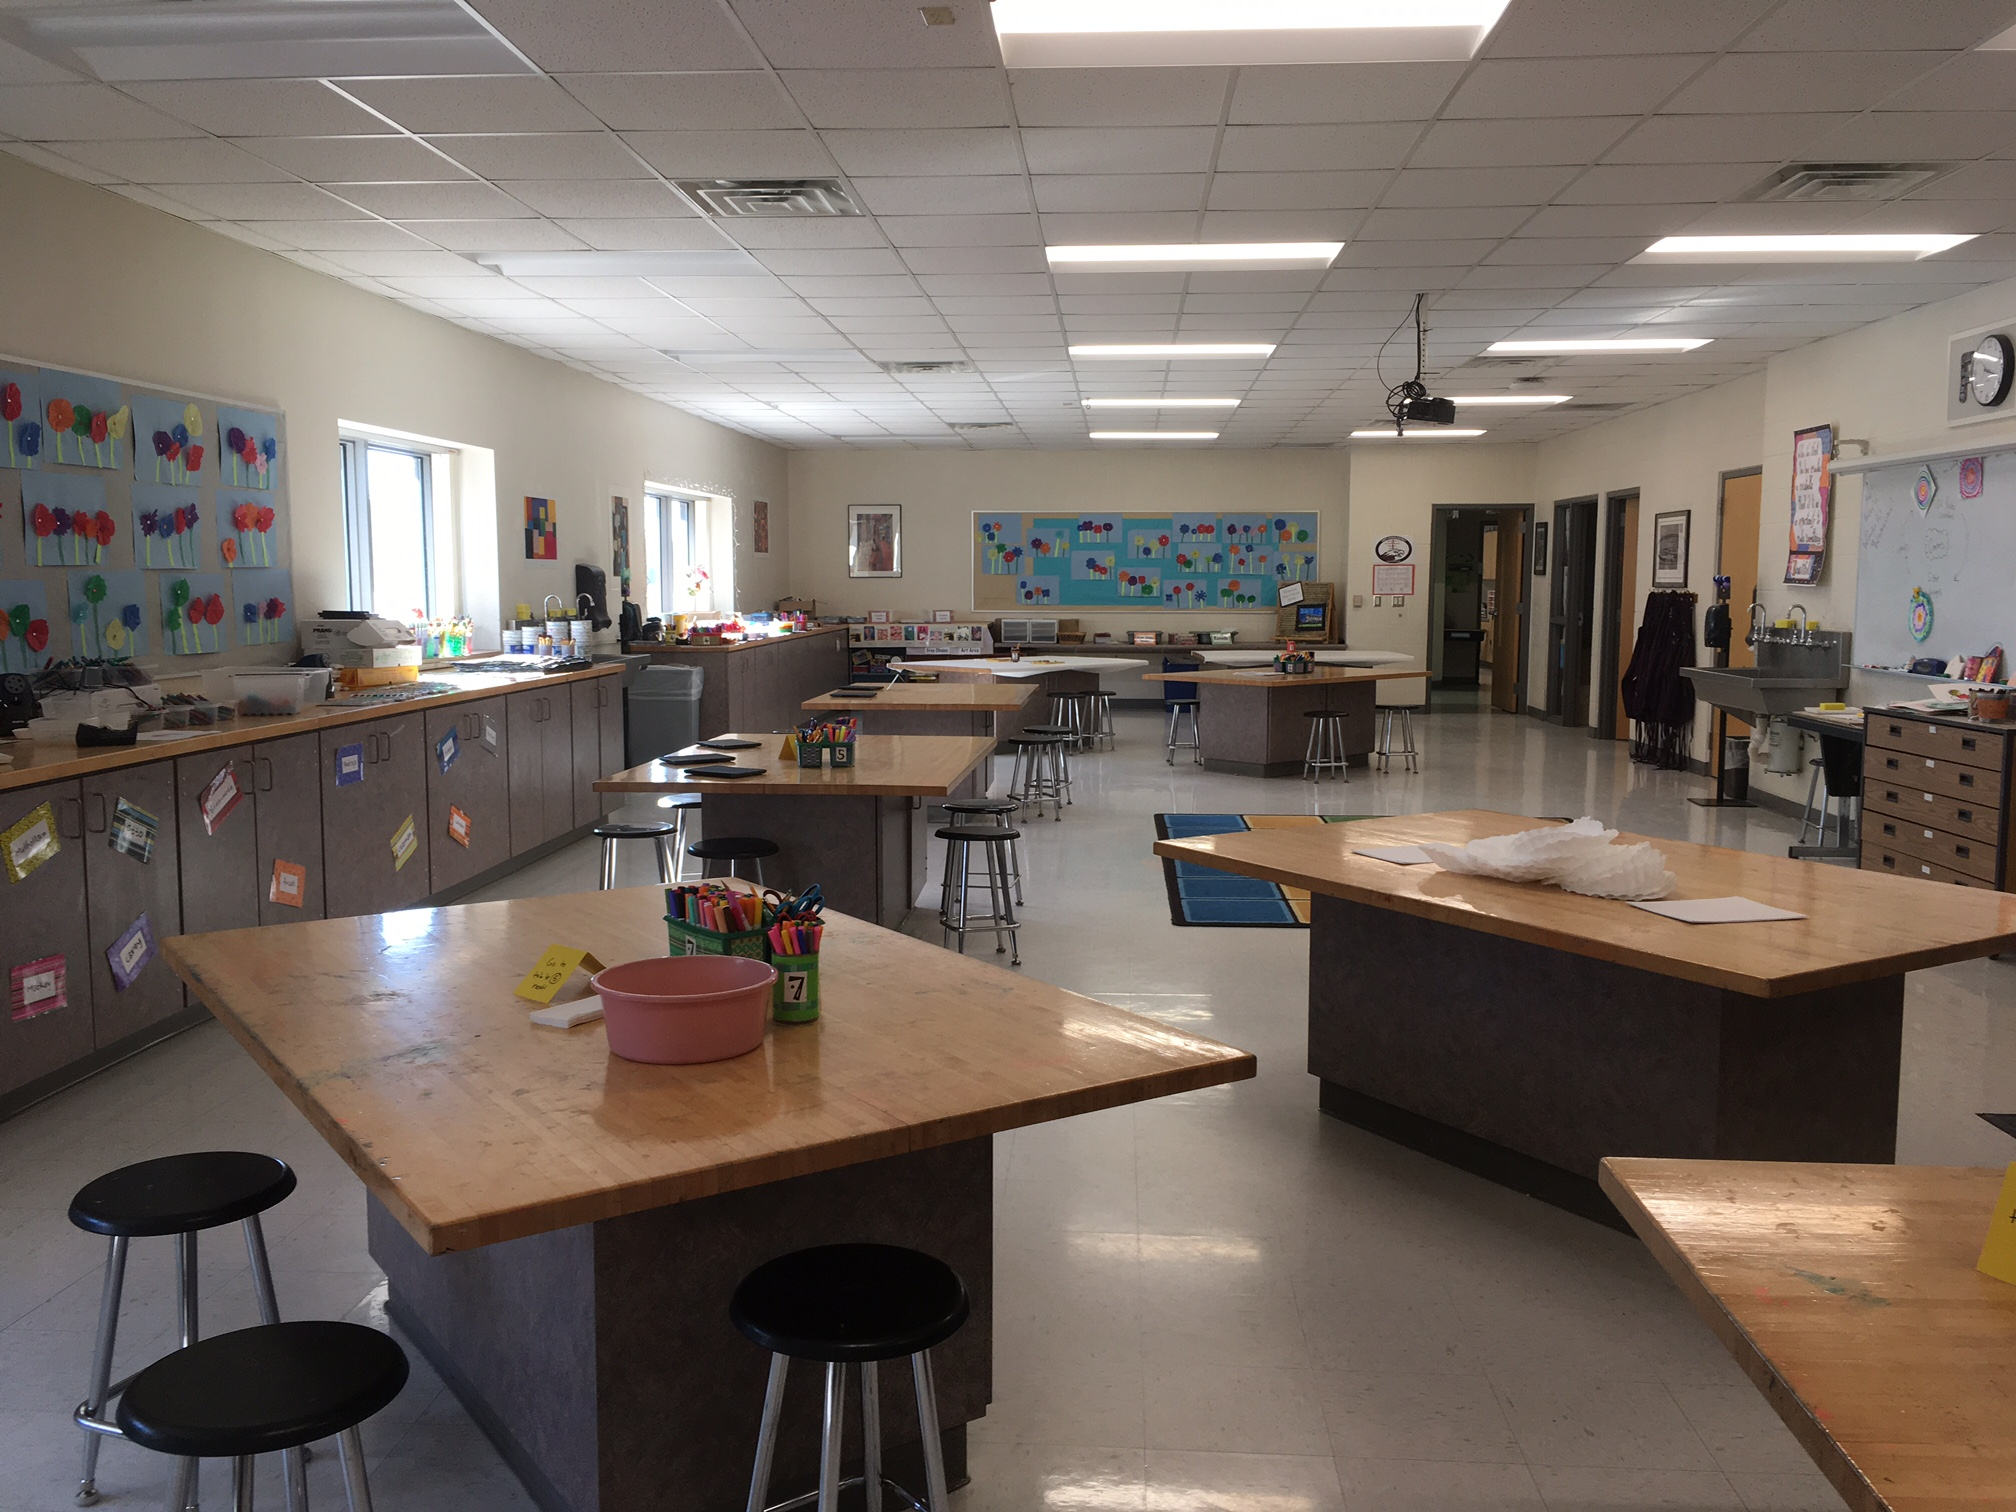 This is the Unity Elementary Art Room